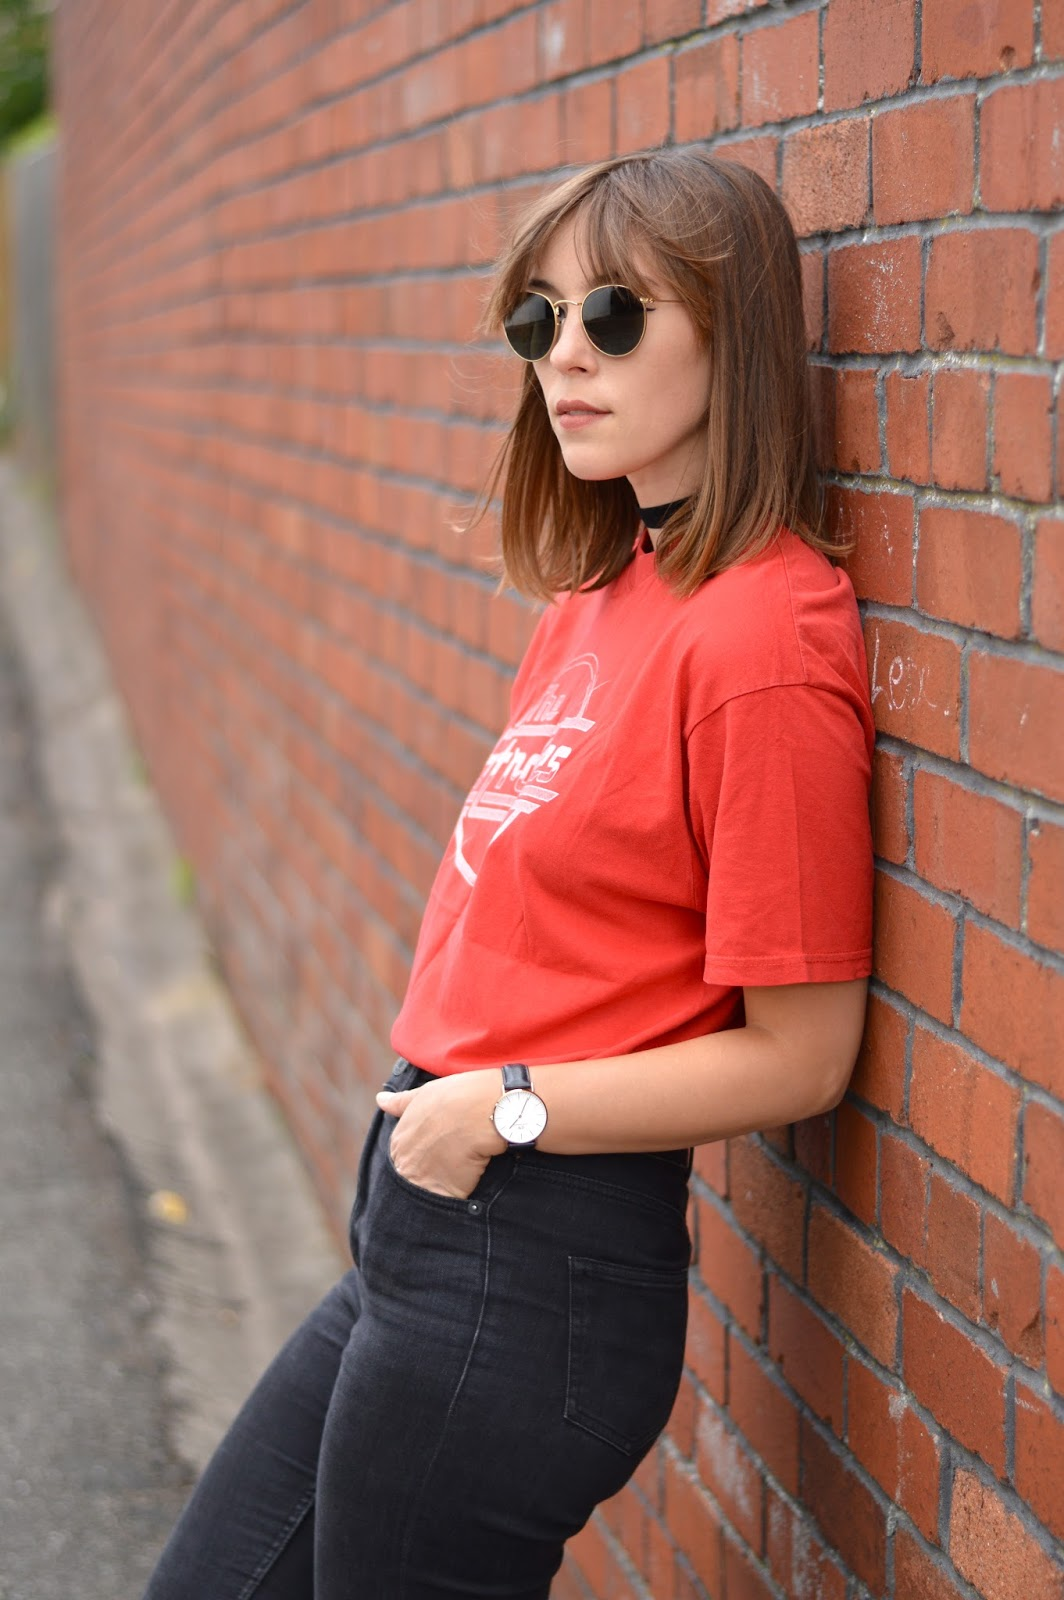 Basic style band t-shirt, skinny jeans, converse